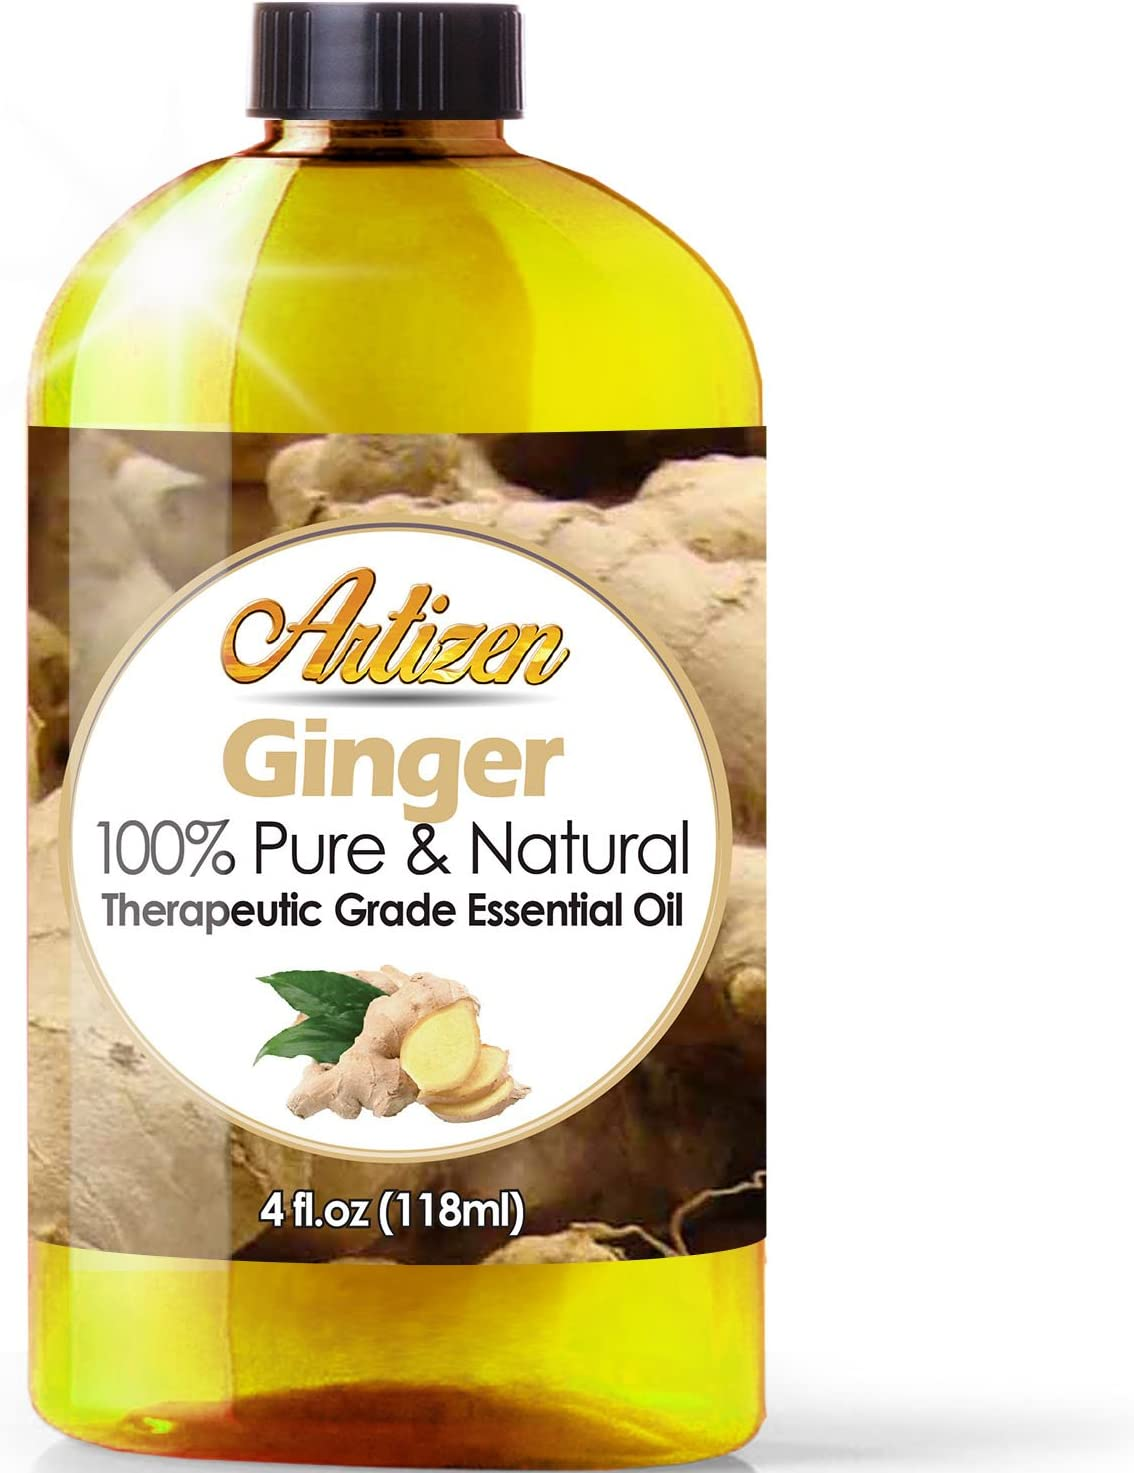 Artizen Ginger Essential Oil (100% Pure & Natural - Undiluted) Therapeutic Grade - Huge 4oz Bottle - Perfect for Aromatherapy, Relaxation, Skin Therapy & More!